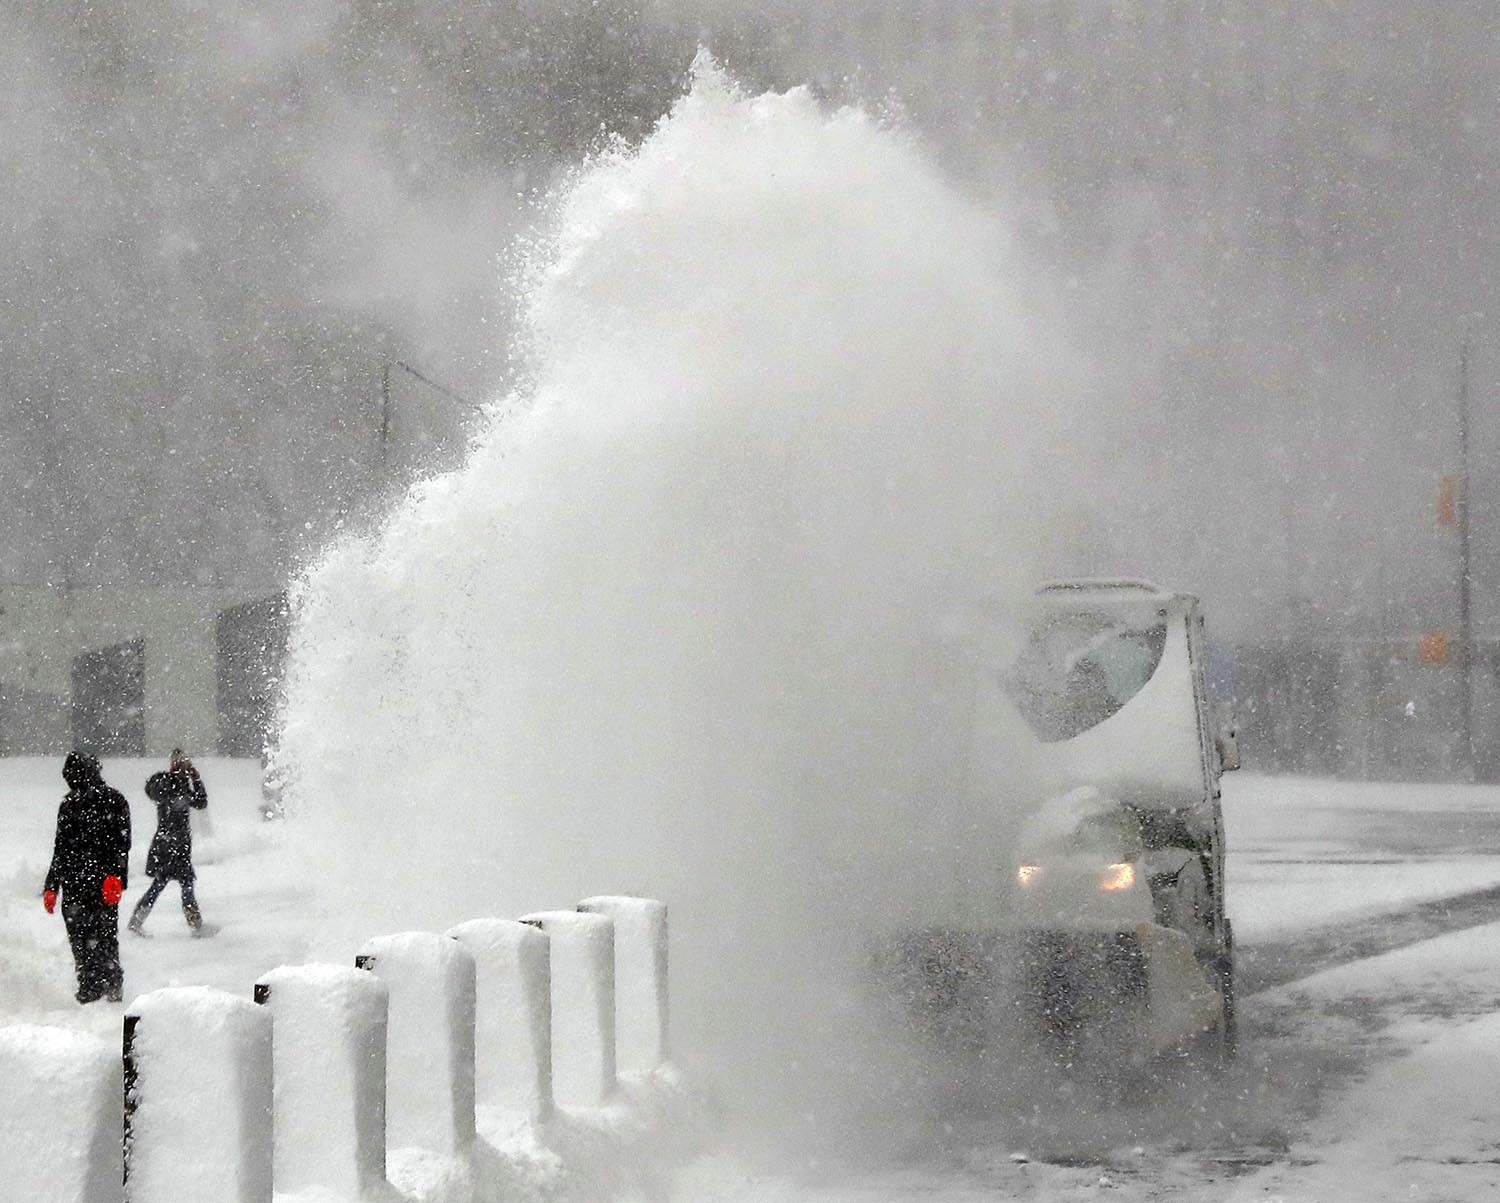 <div class='meta'><div class='origin-logo' data-origin='AP'></div><span class='caption-text' data-credit='AP Photo/Kathy Willens'>A worker clears snow from a plaza in lower Manhattan in New York, Thursday, Jan. 4, 2018 as a powerful winter storm buffeted the area with high winds and blowing snow.</span></div>